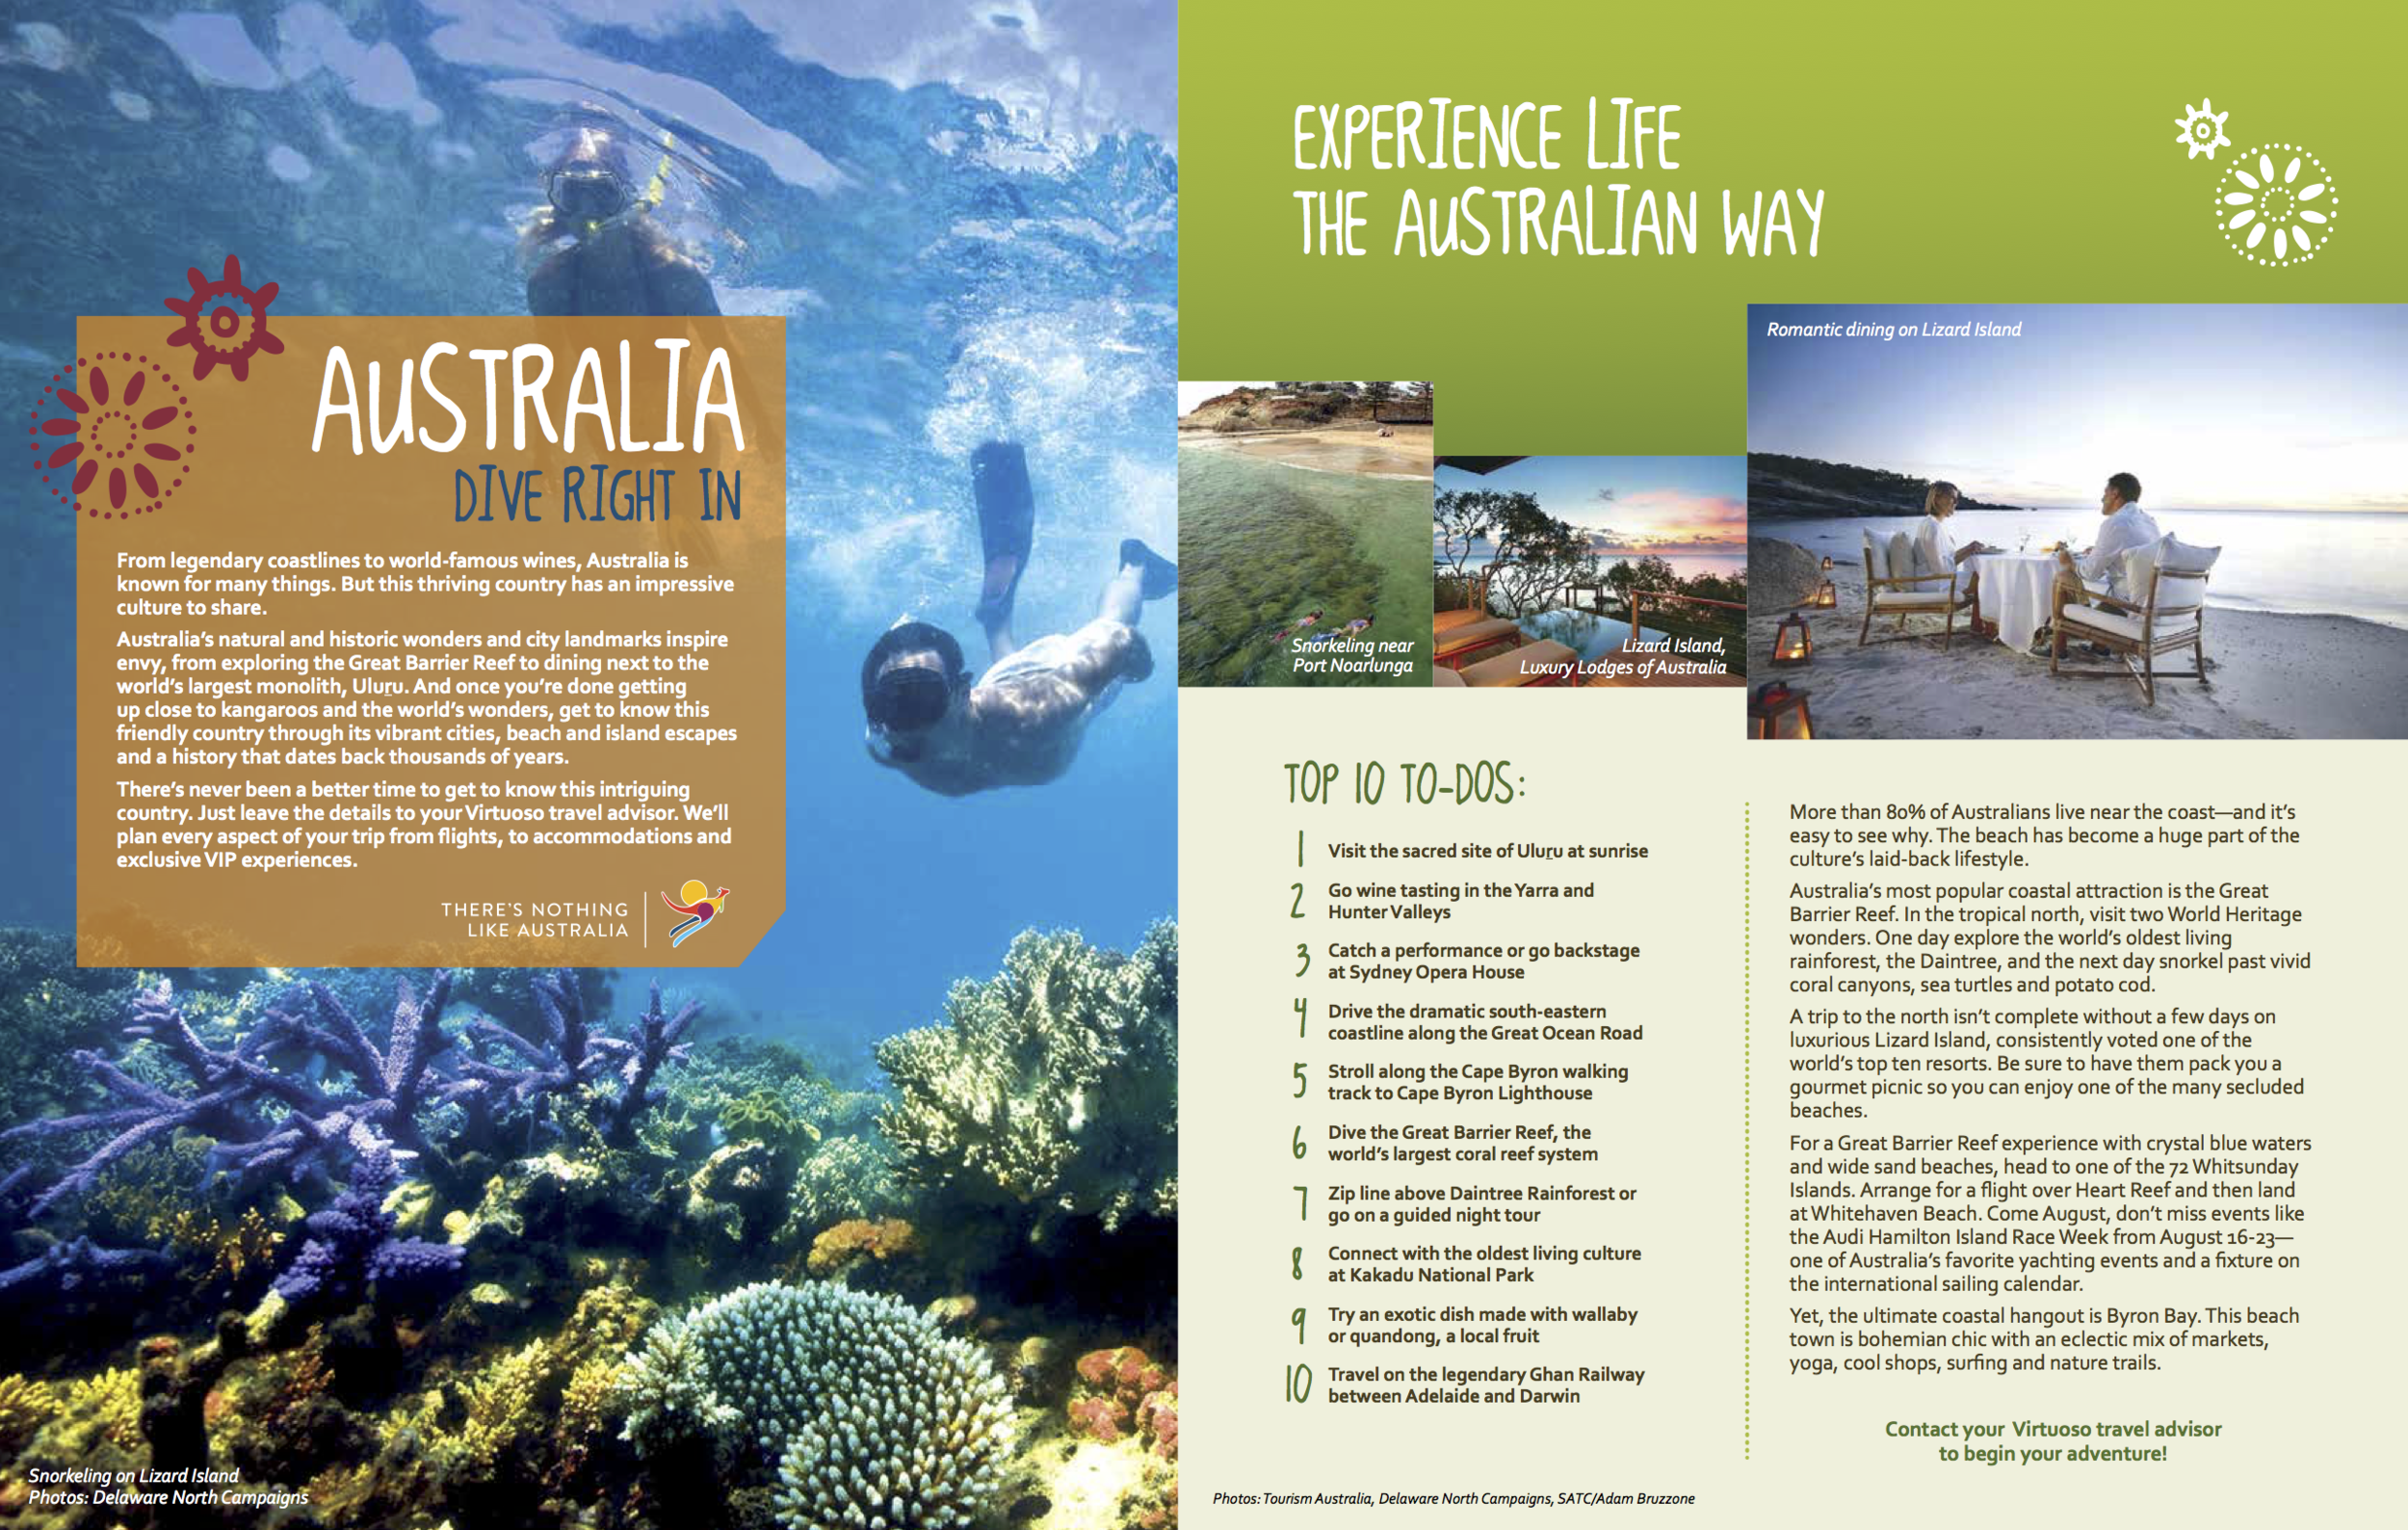 Client: Virtuoso in partnership with Australia Tourism; Full-page insert, 2014